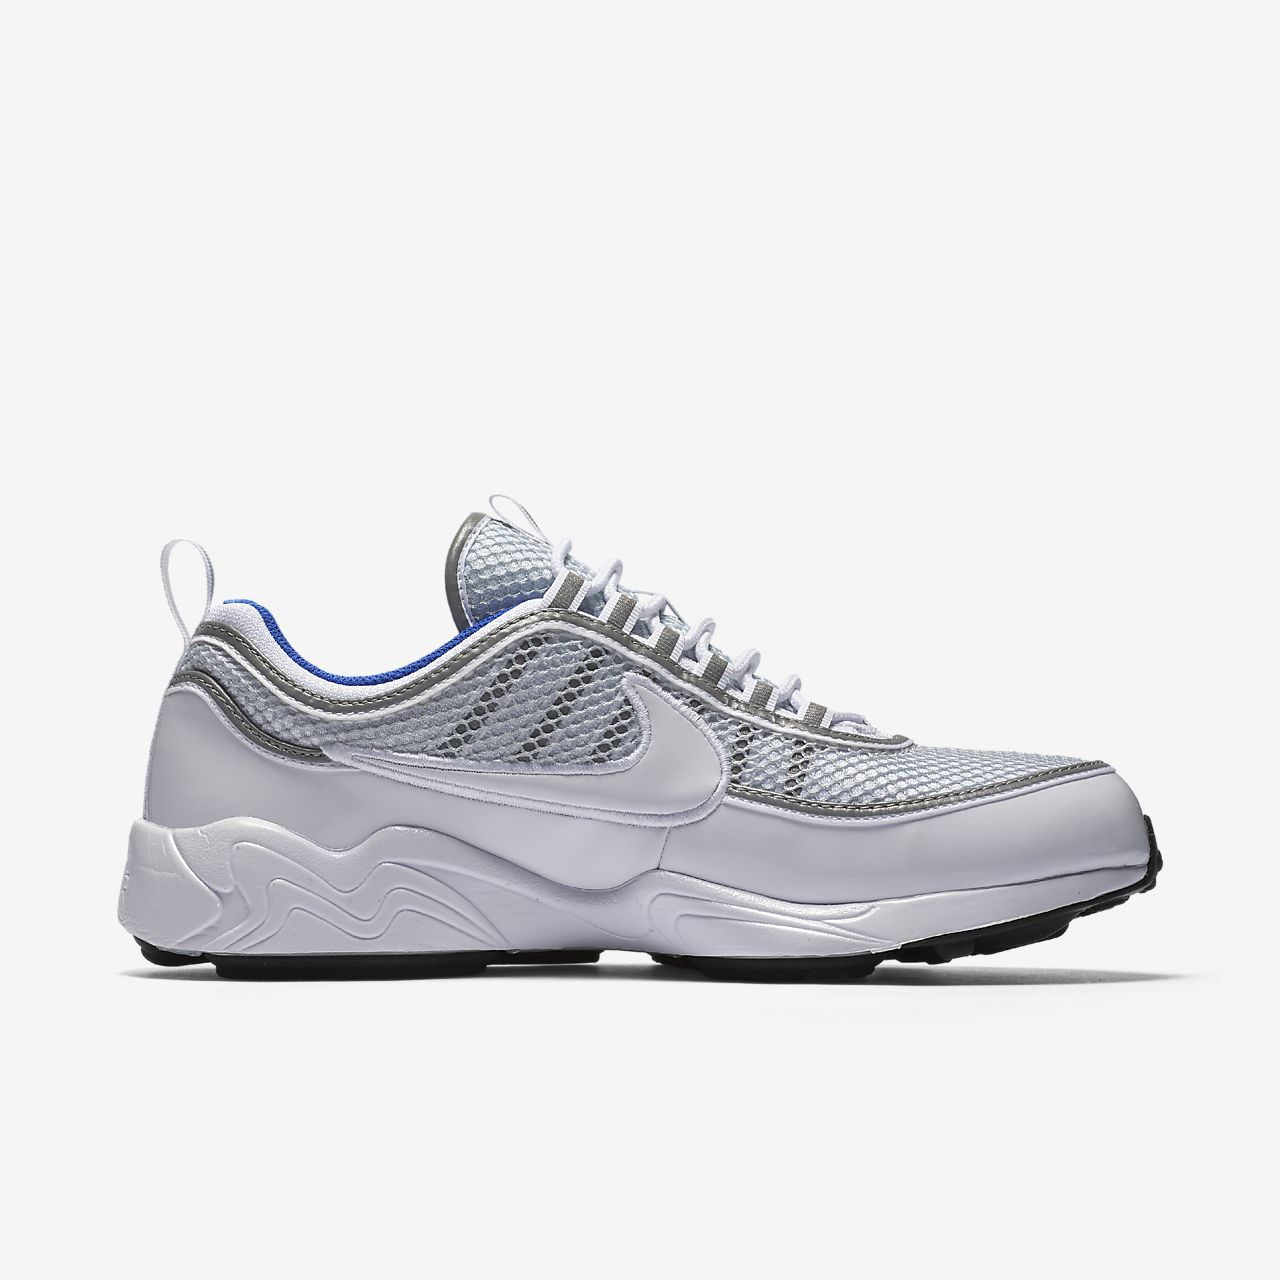 finest selection 322b2 d5e23 ... Nike Air Zoom Spiridon 16 Zapatillas - Hombre